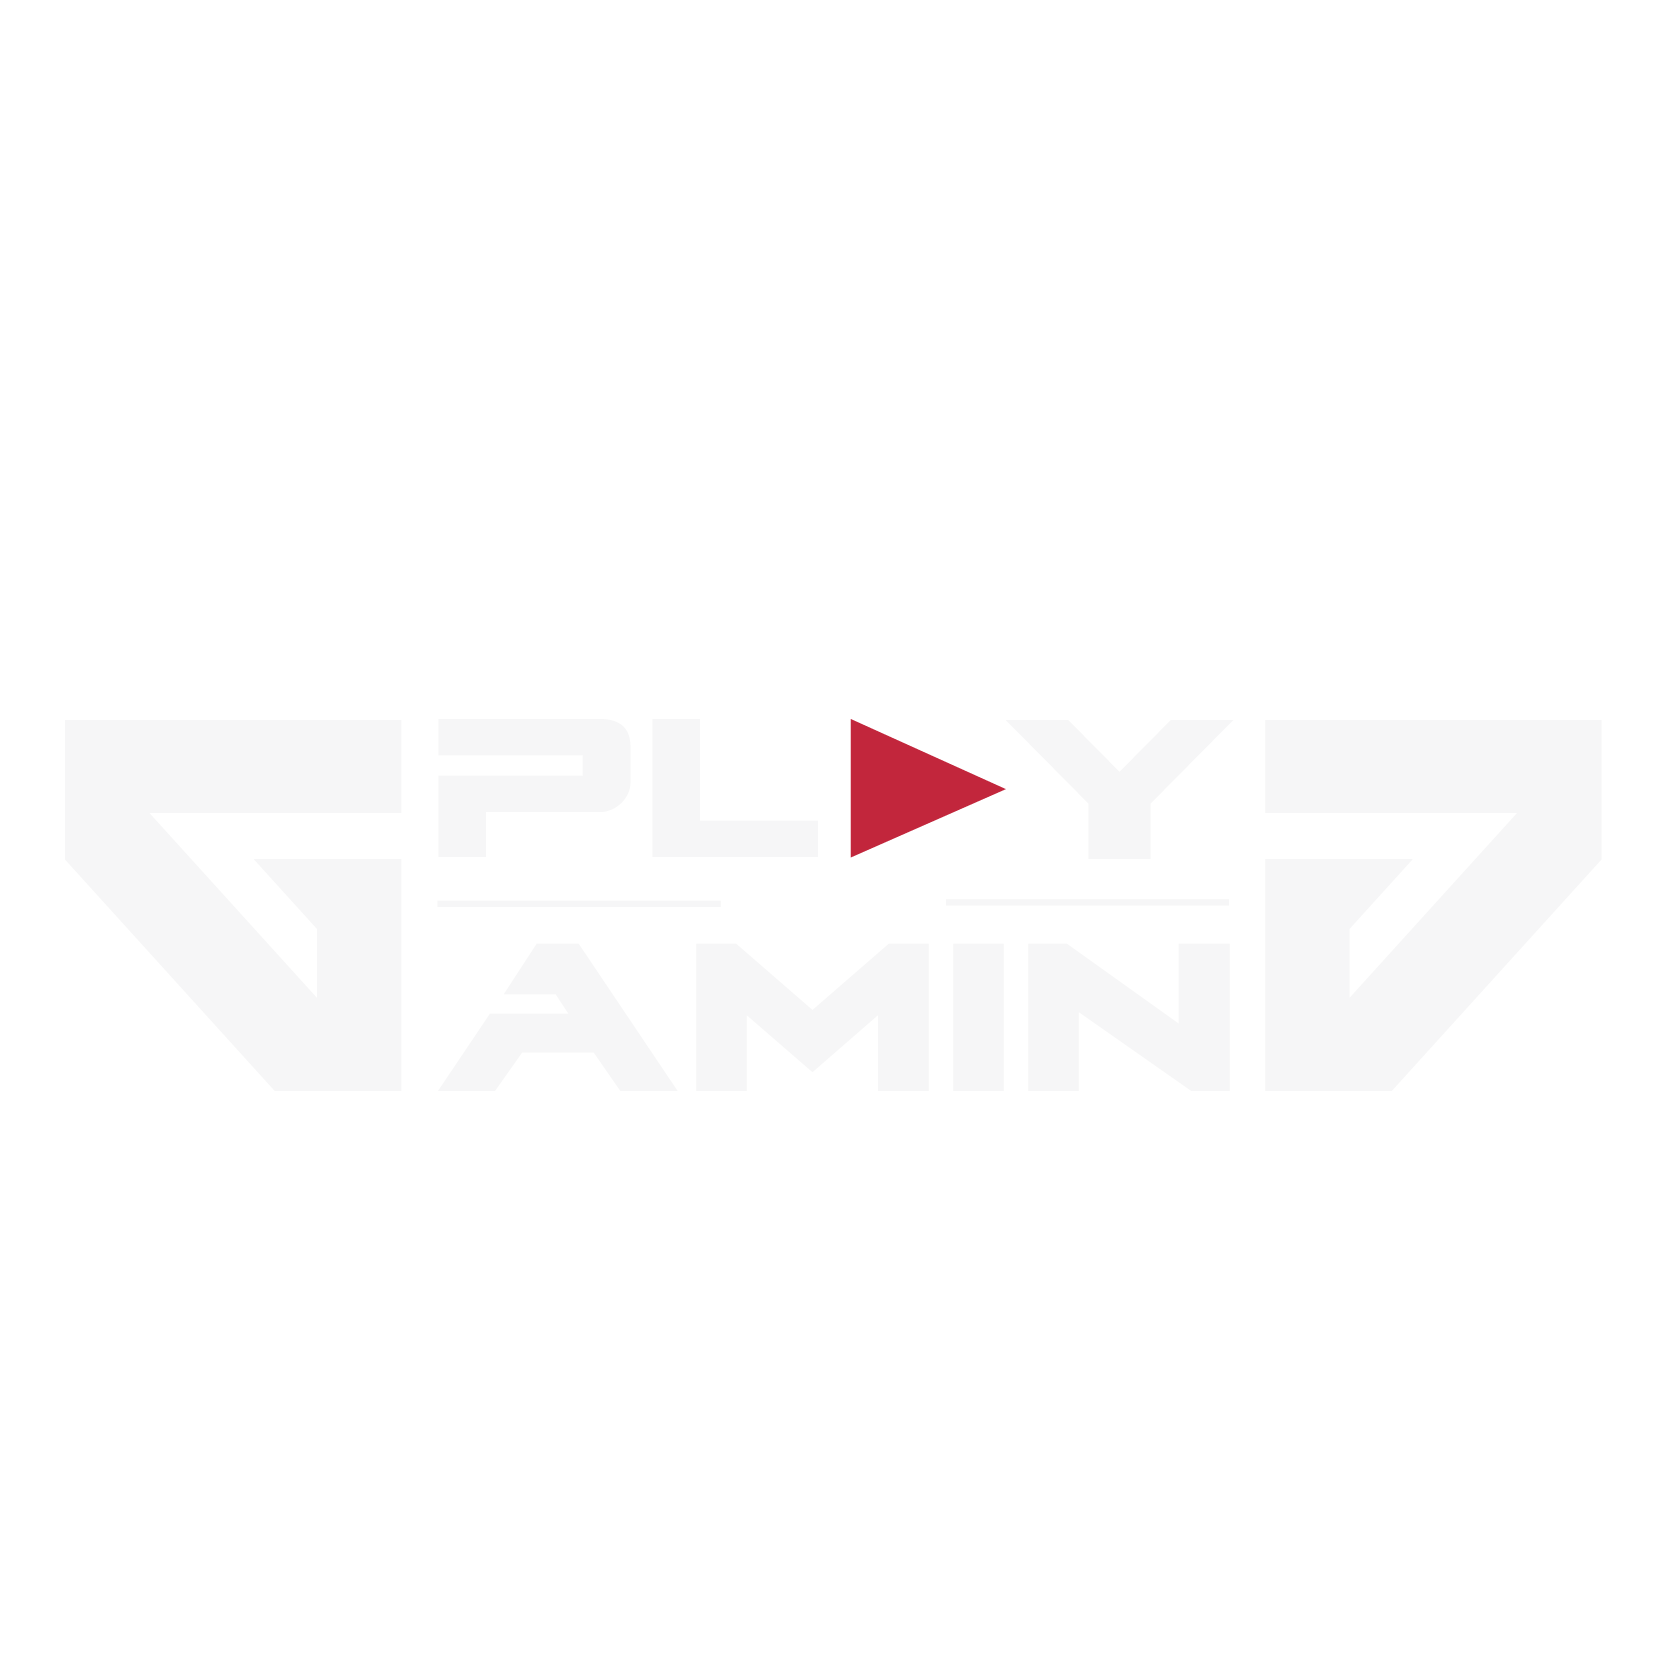 logo play and gaming